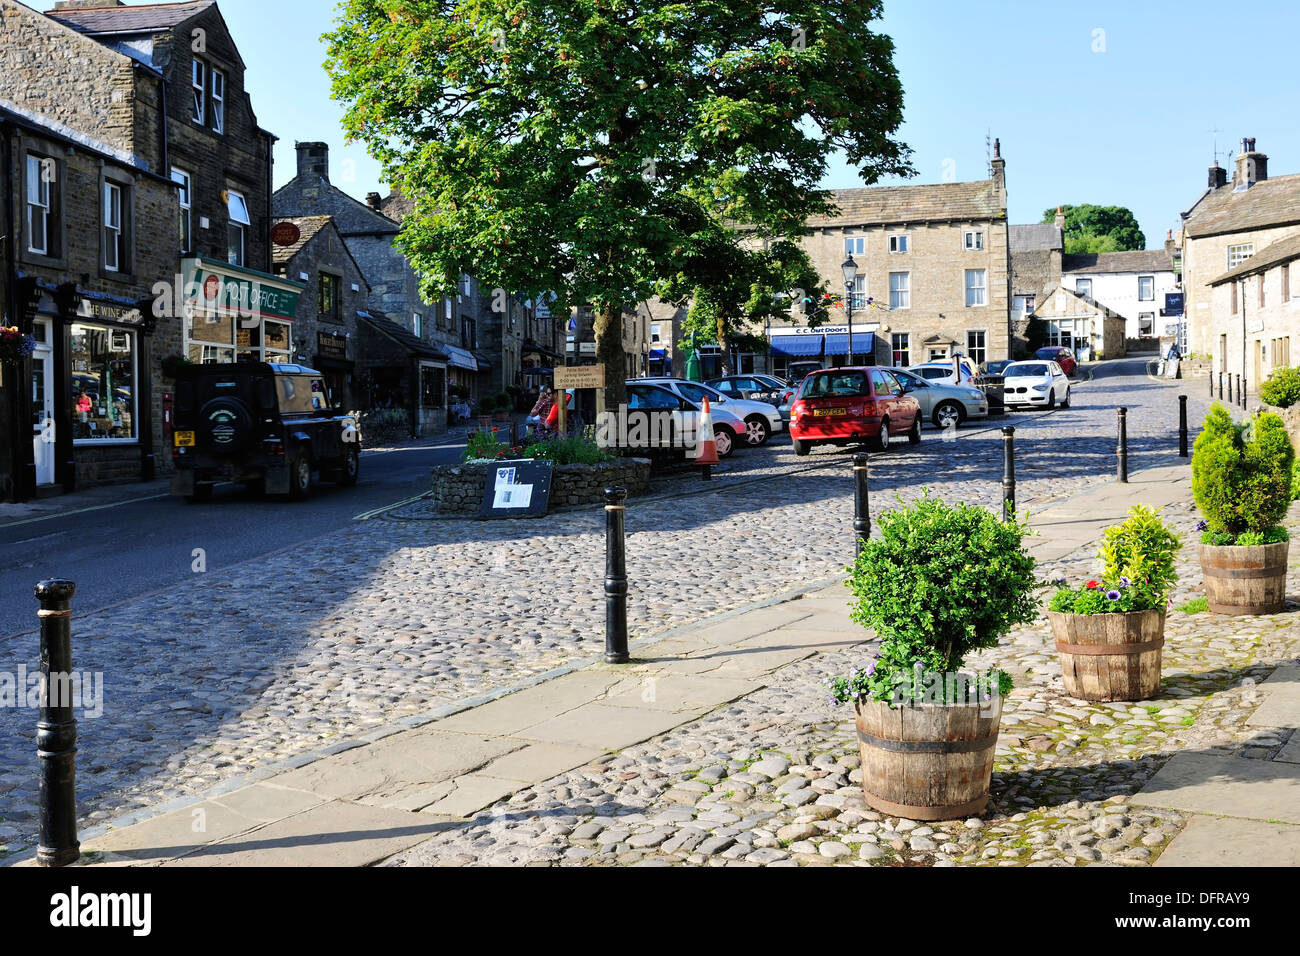 A quiet moment, at the end of the day, in Grassington market square, Yorkshire Dales National Park, England Stock Photo